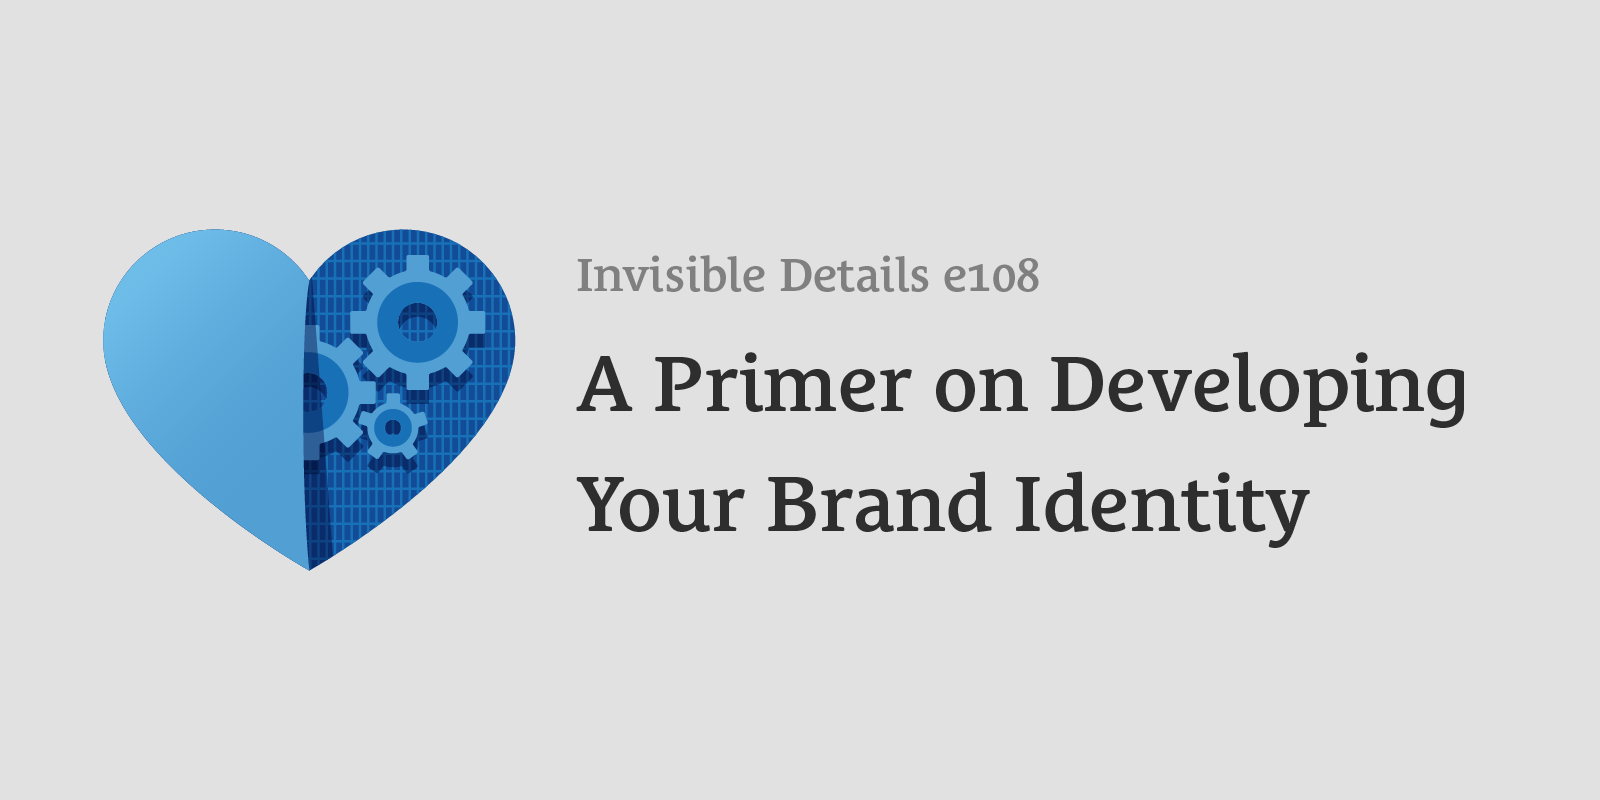 A Primer on Developing Your Brand Identity